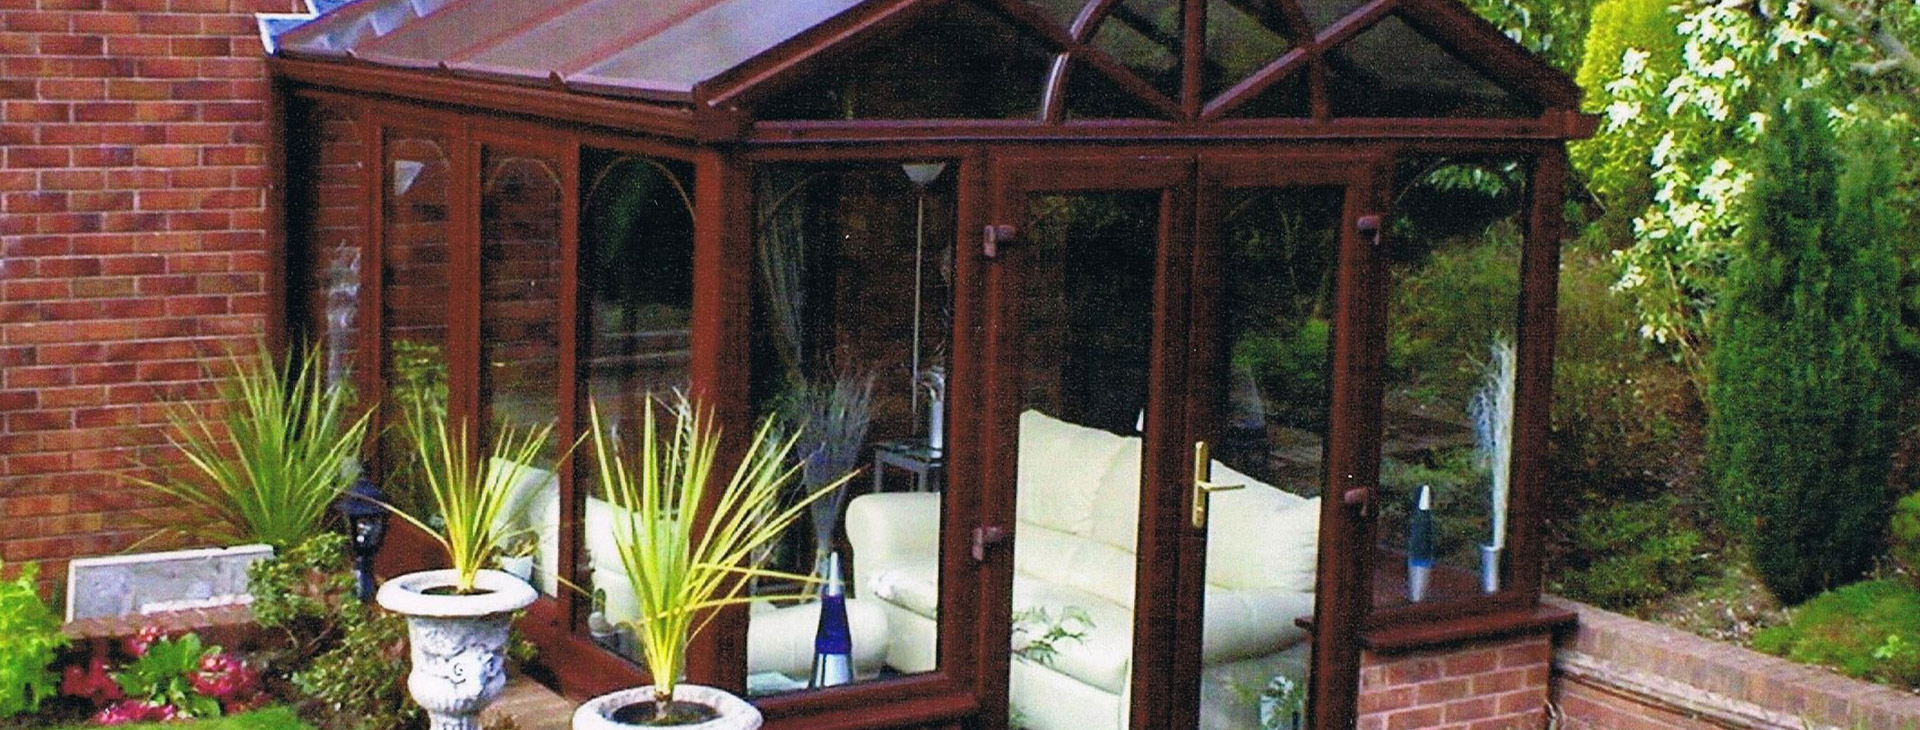 conservatories4-1920x730